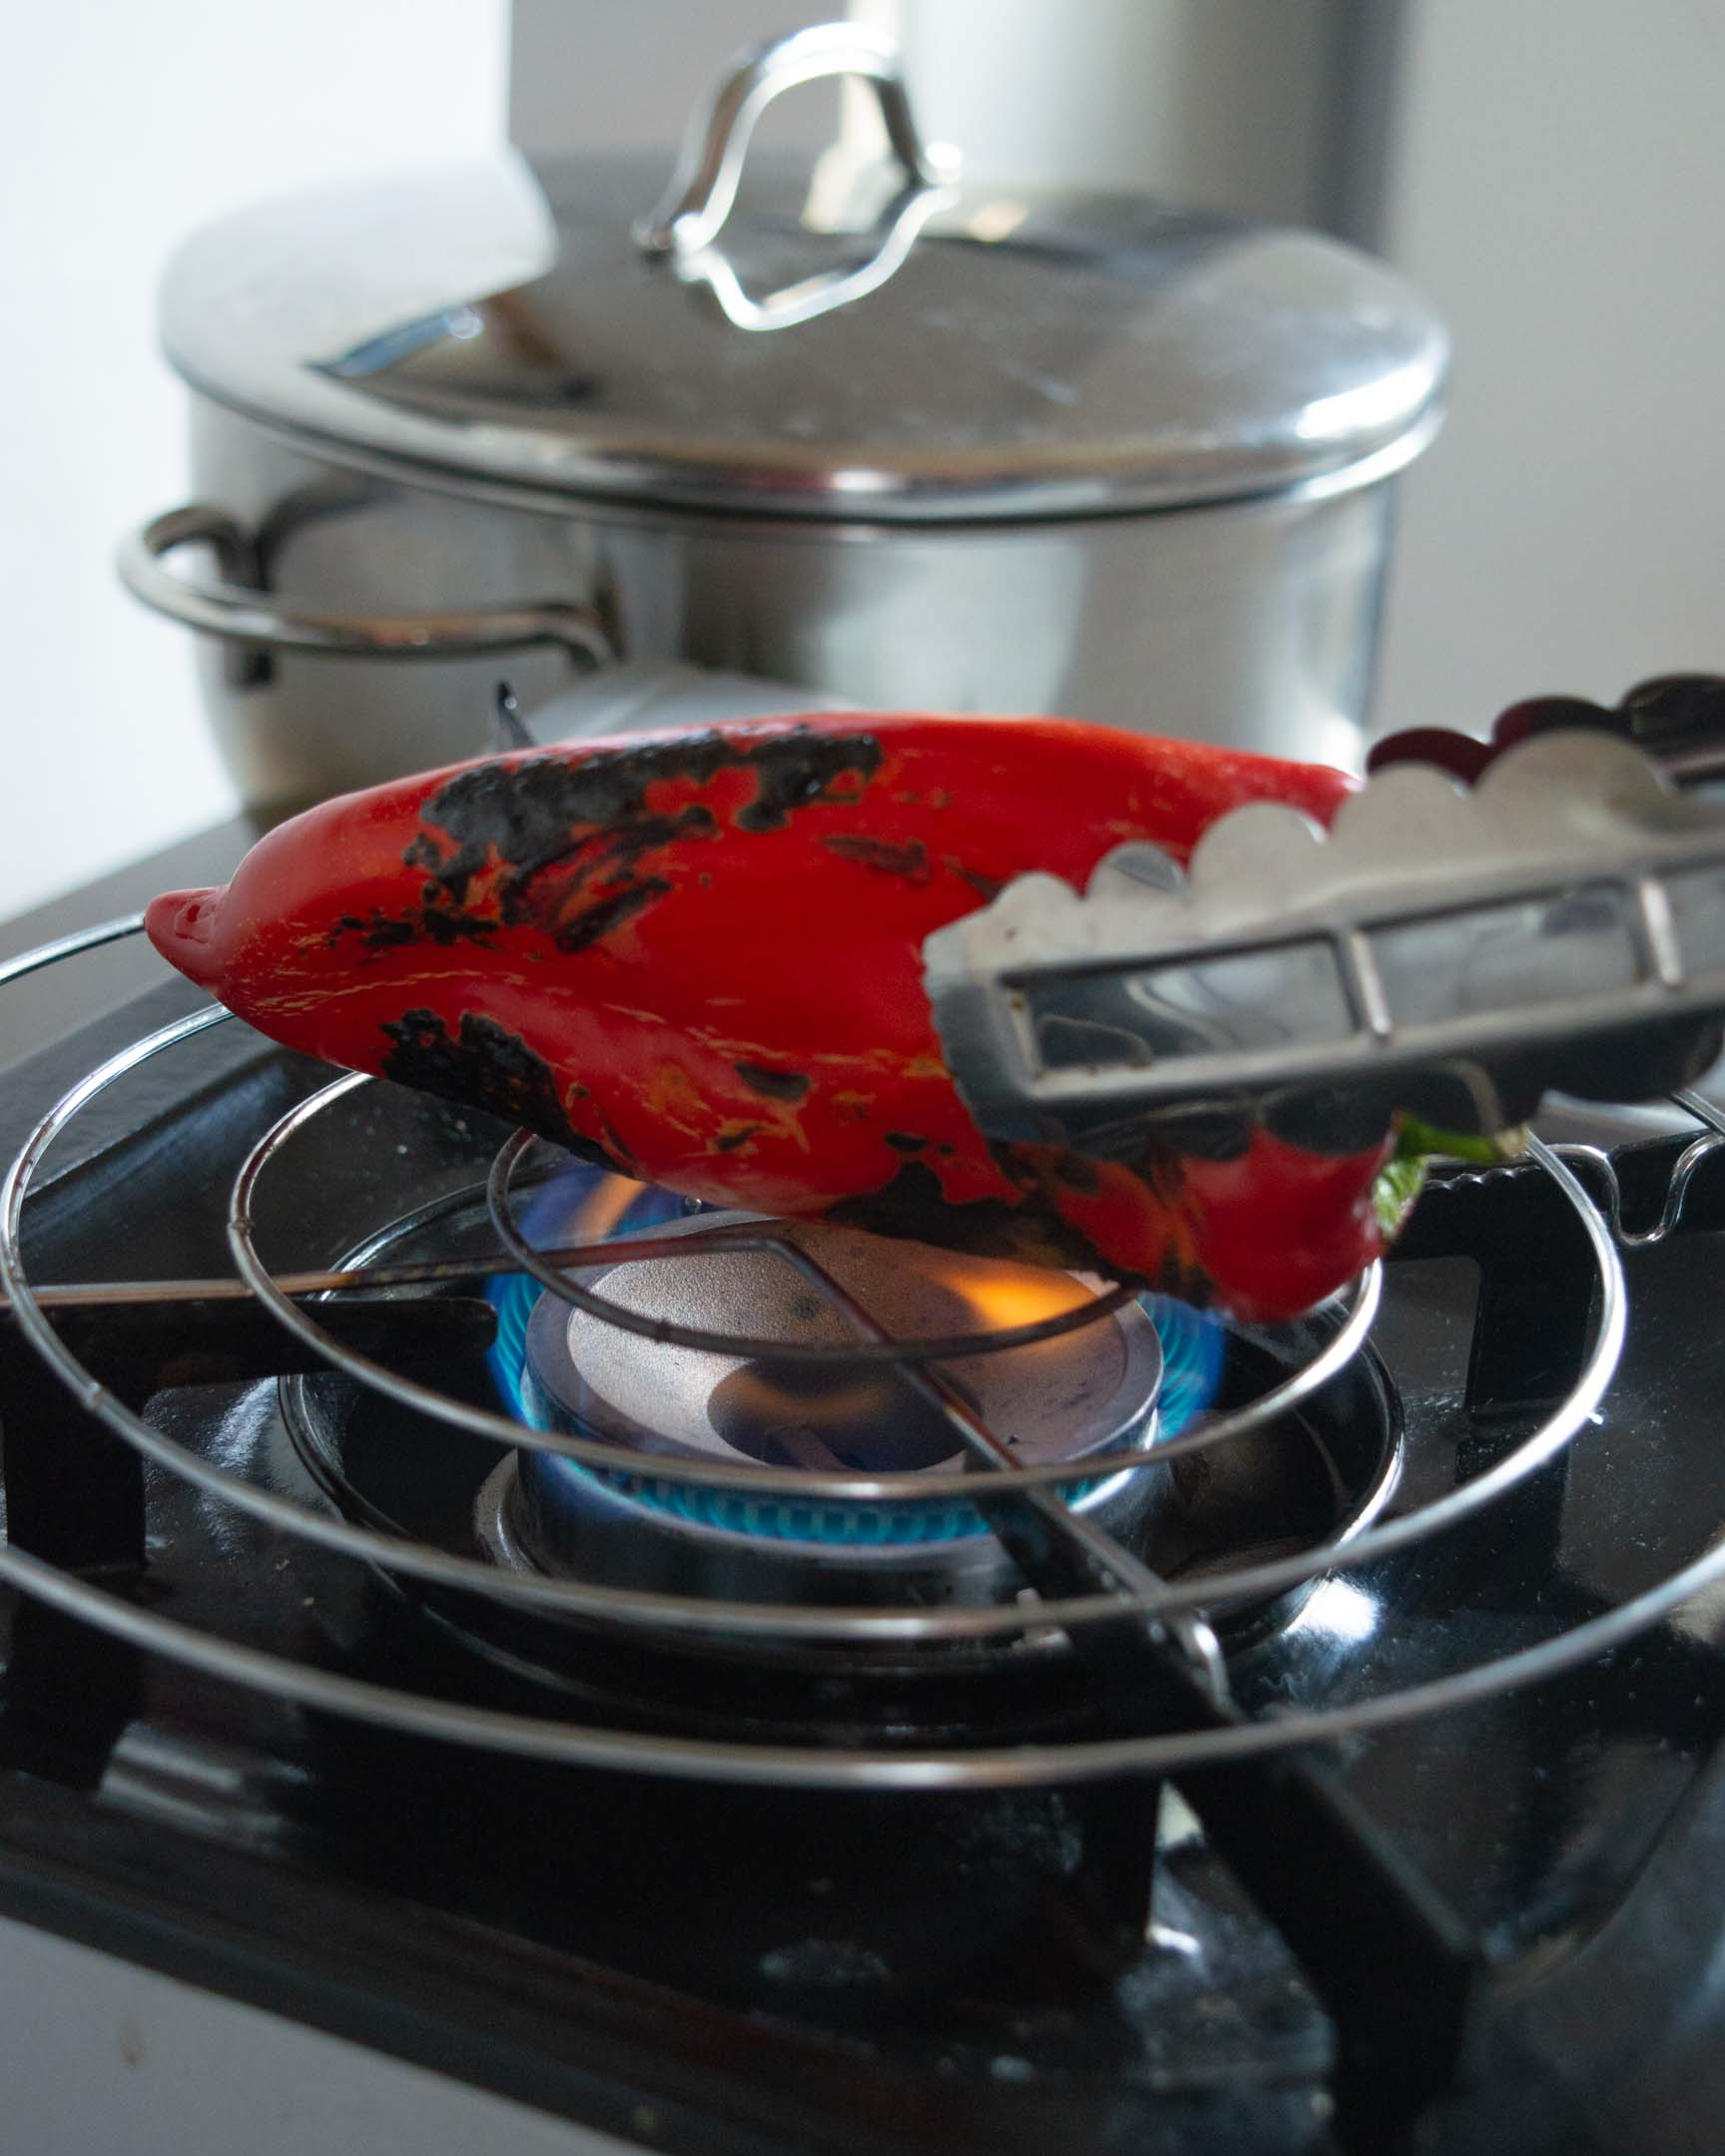 sweet red pepper on gas stove open flame